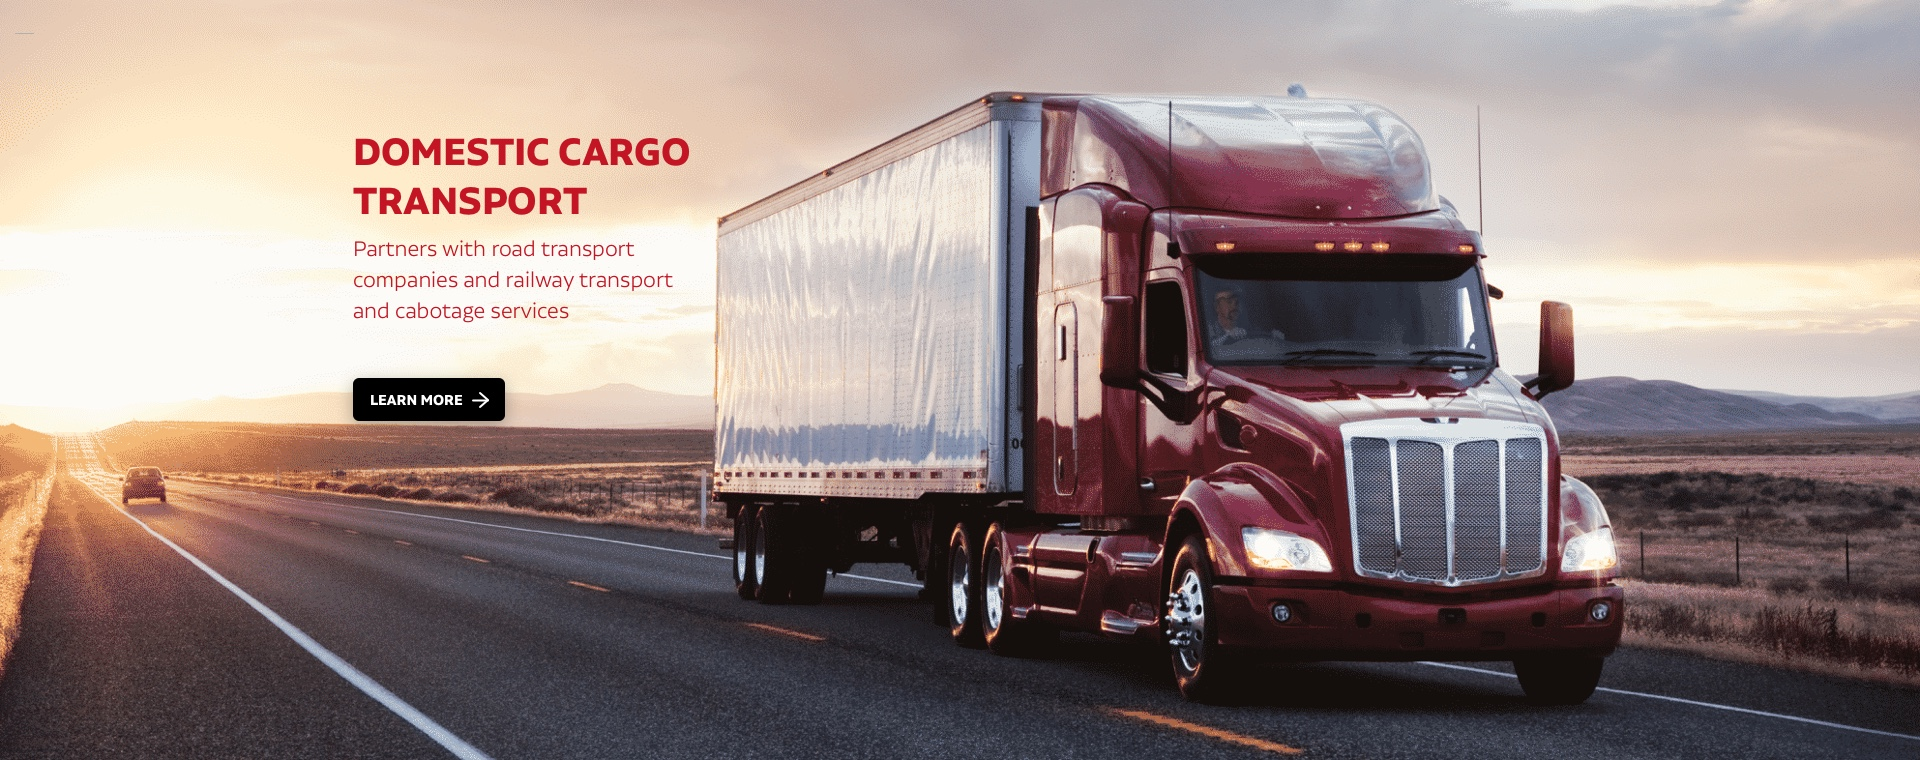 Domestic cargo transport: Partners with road transport companies and railway transport and cabotage services